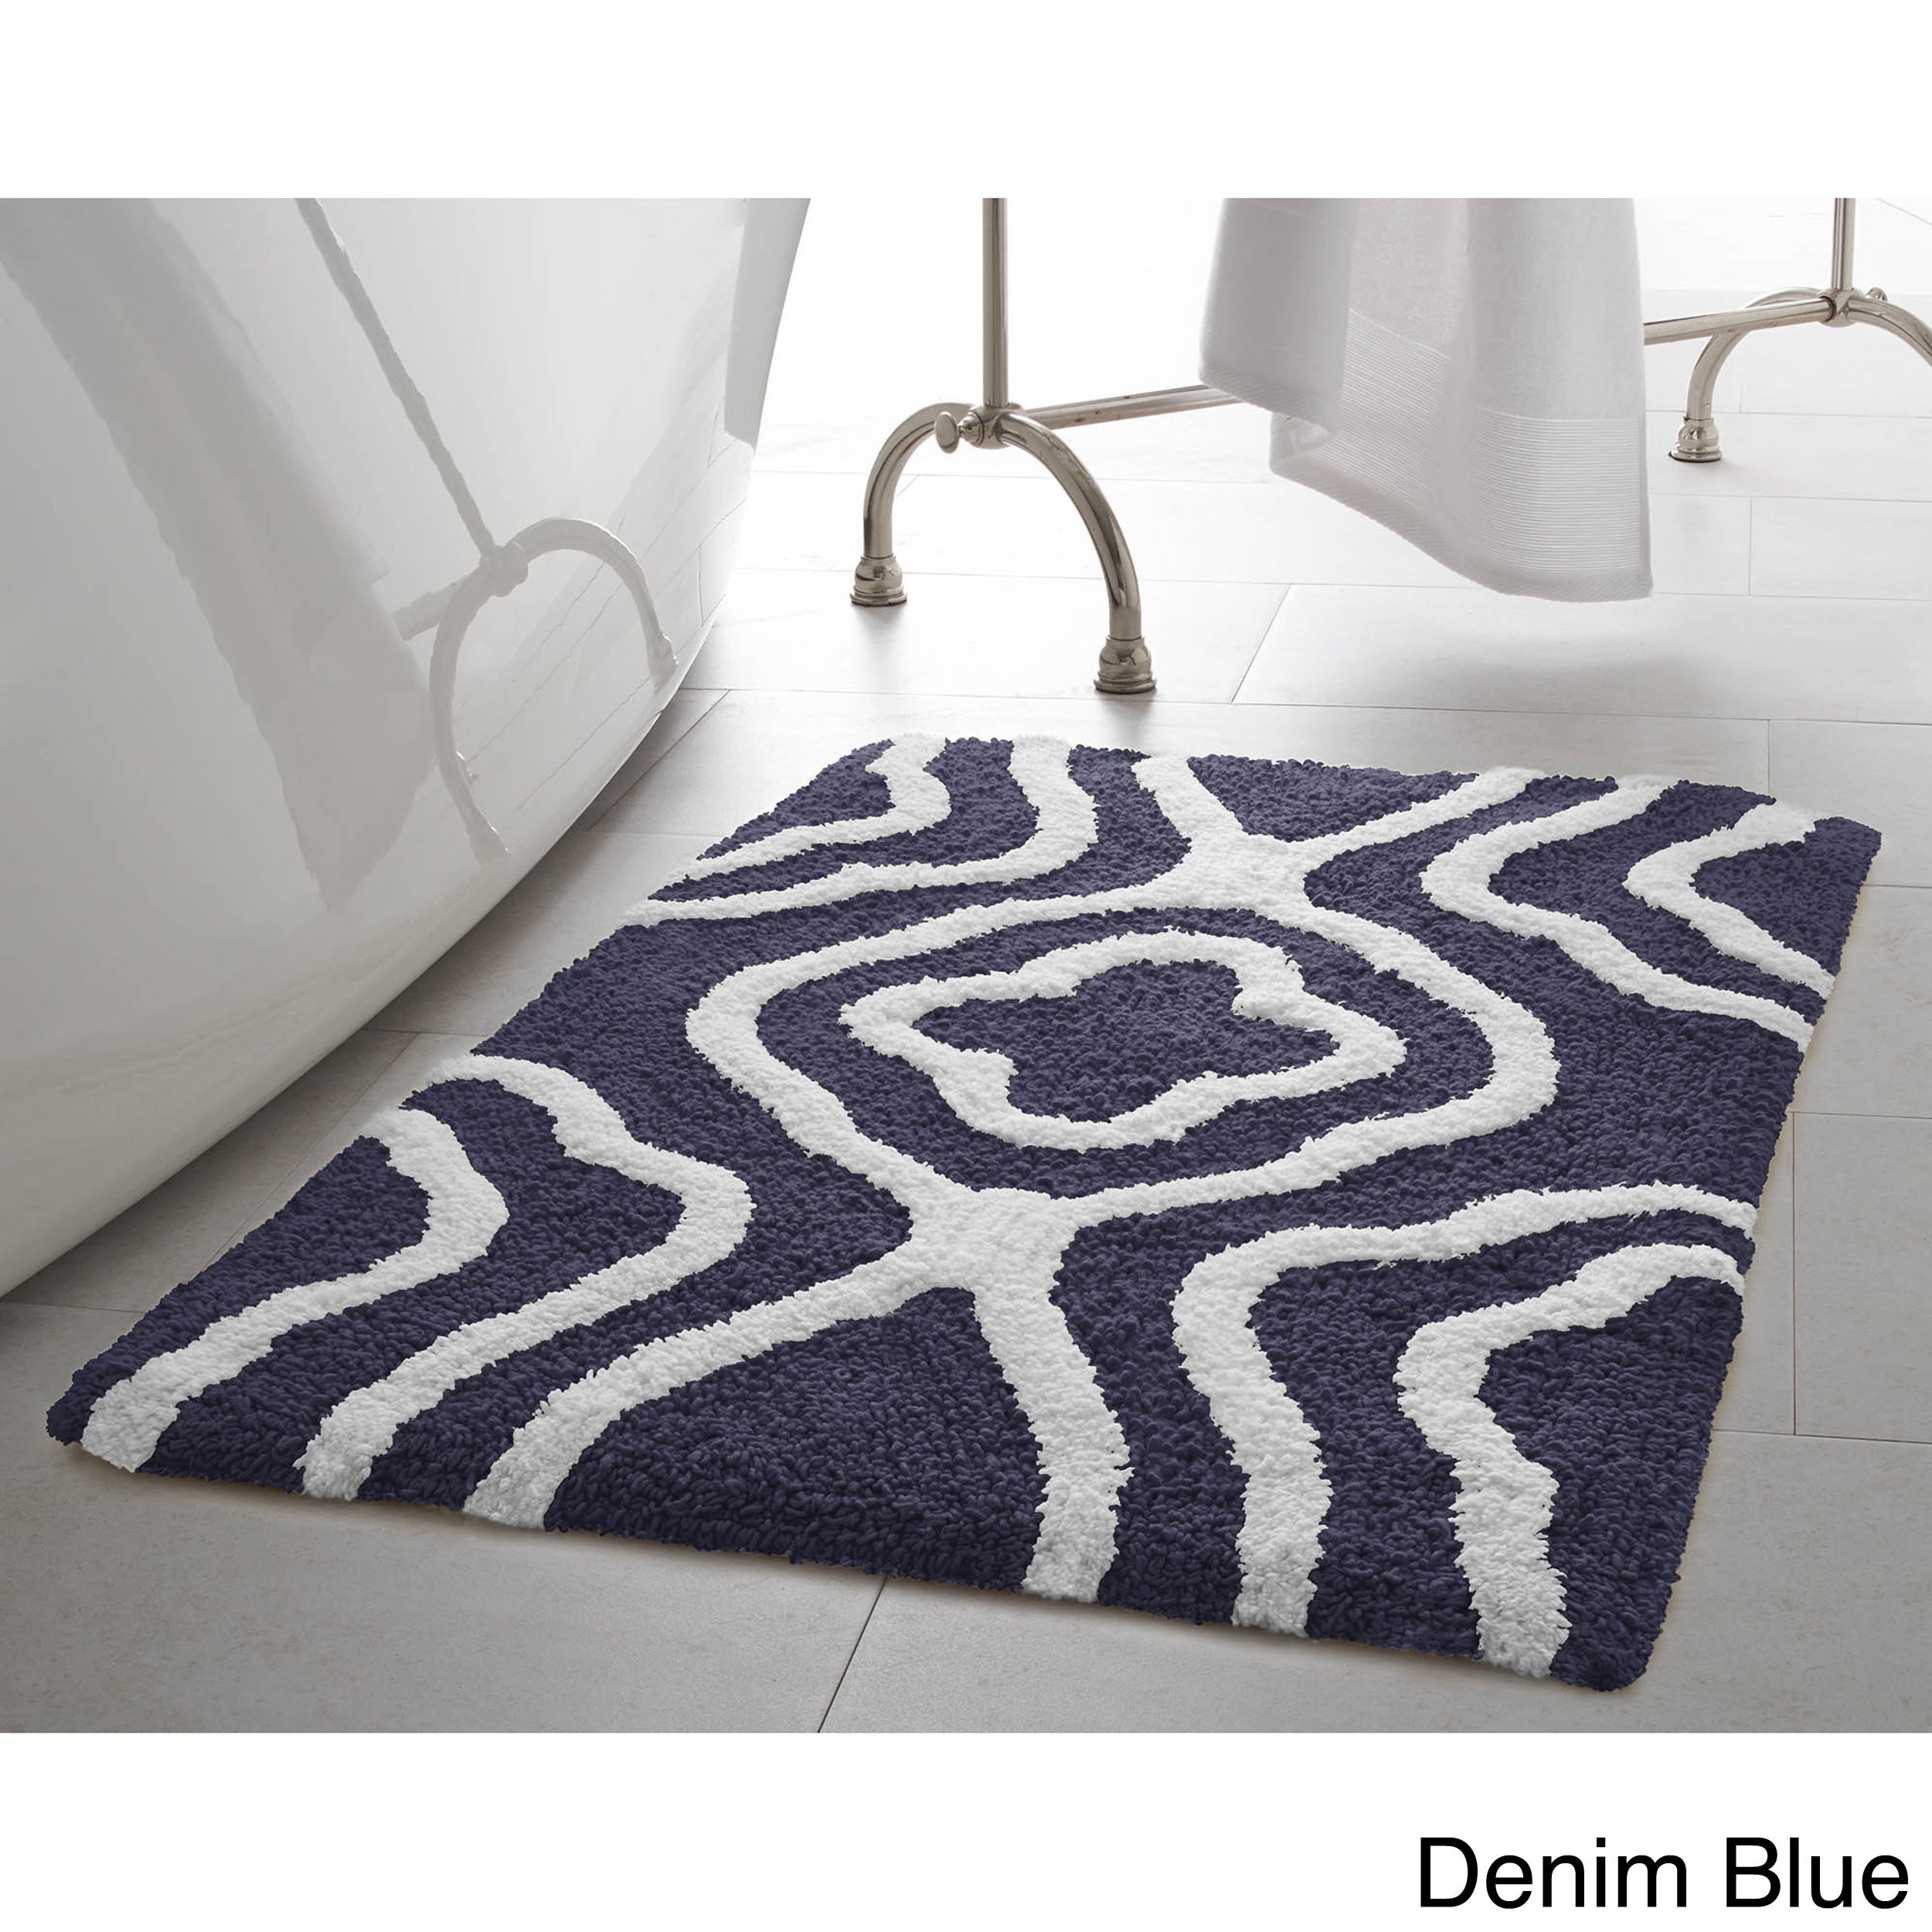 ip walmart better mat soft multiple purple extra homes collection colors rug mats bath sizes and gardens com